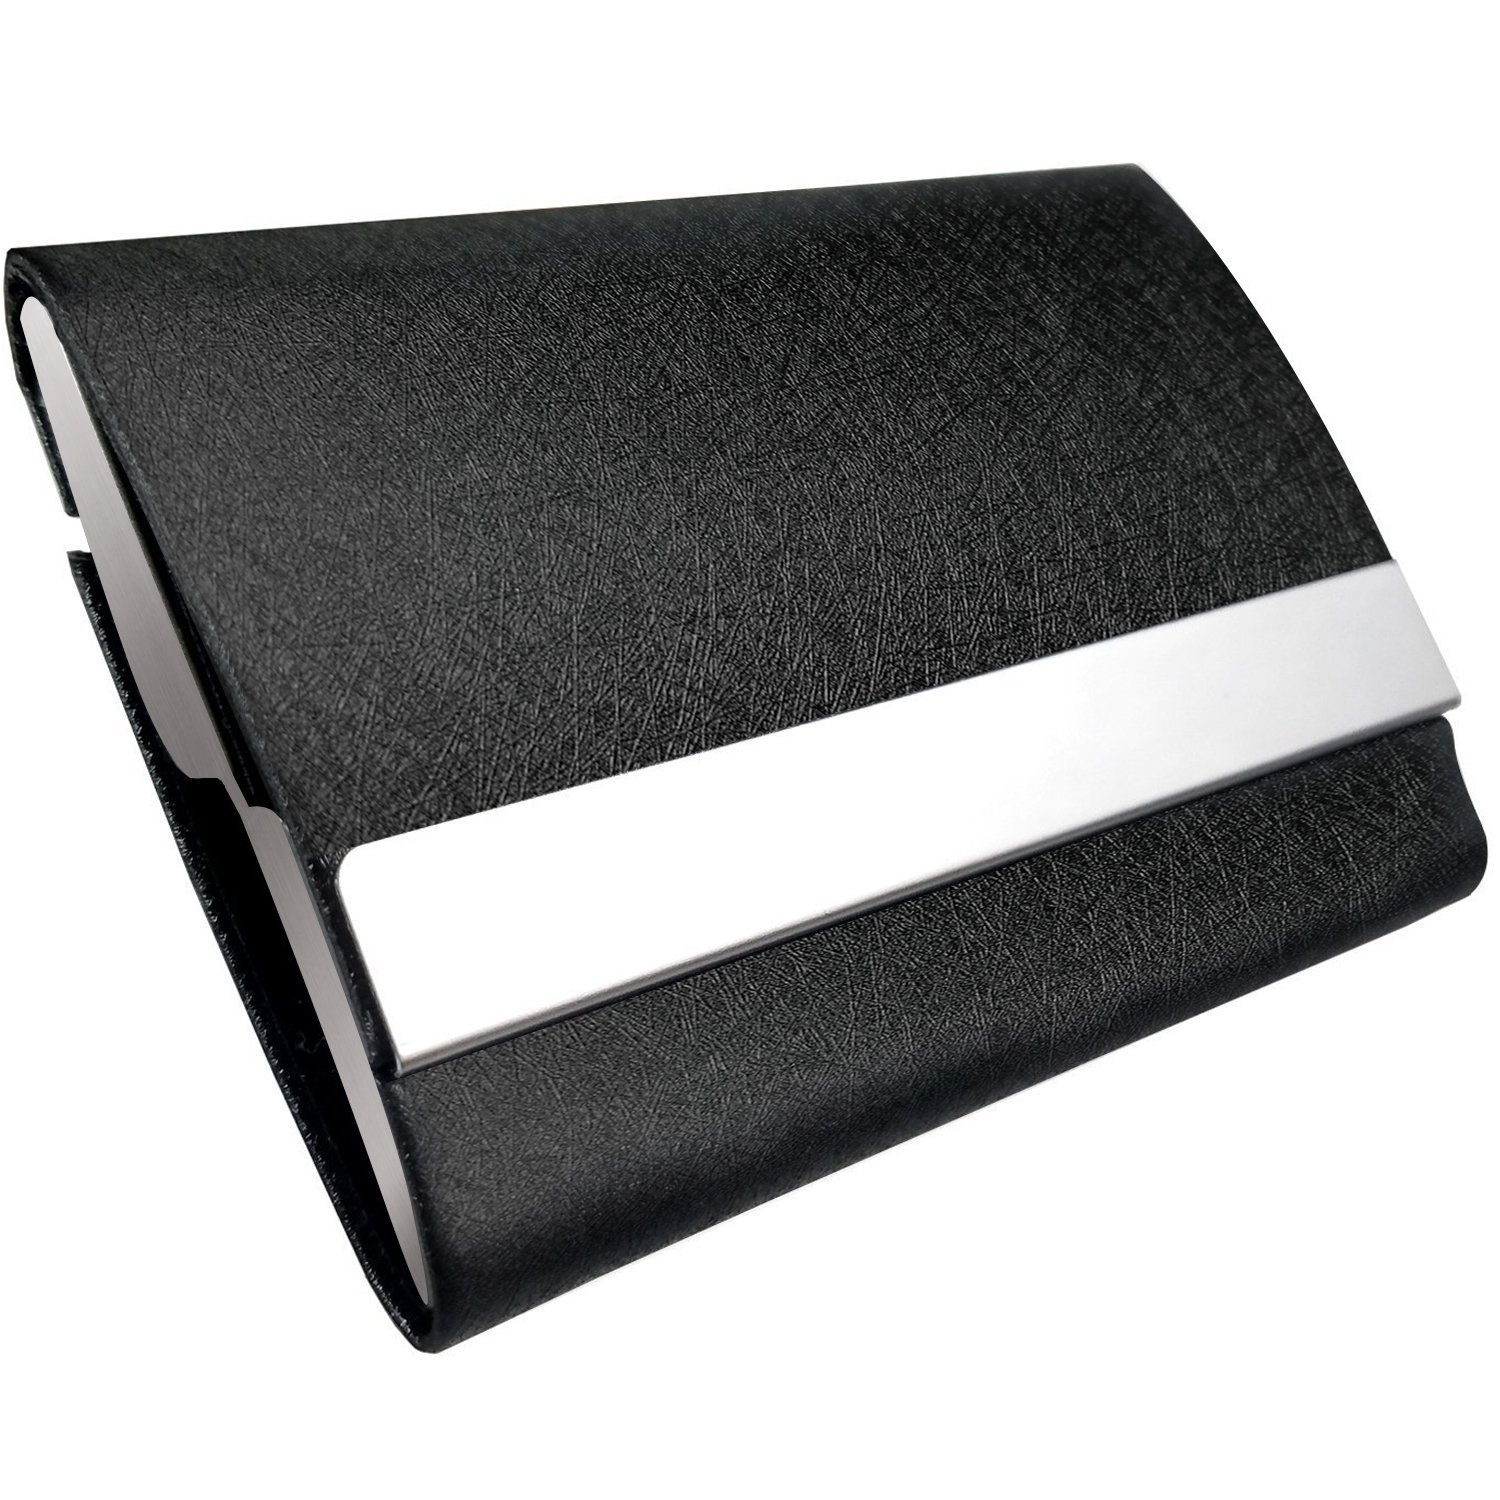 Business Card Holders | Amazon.com | Office & School Supplies ...